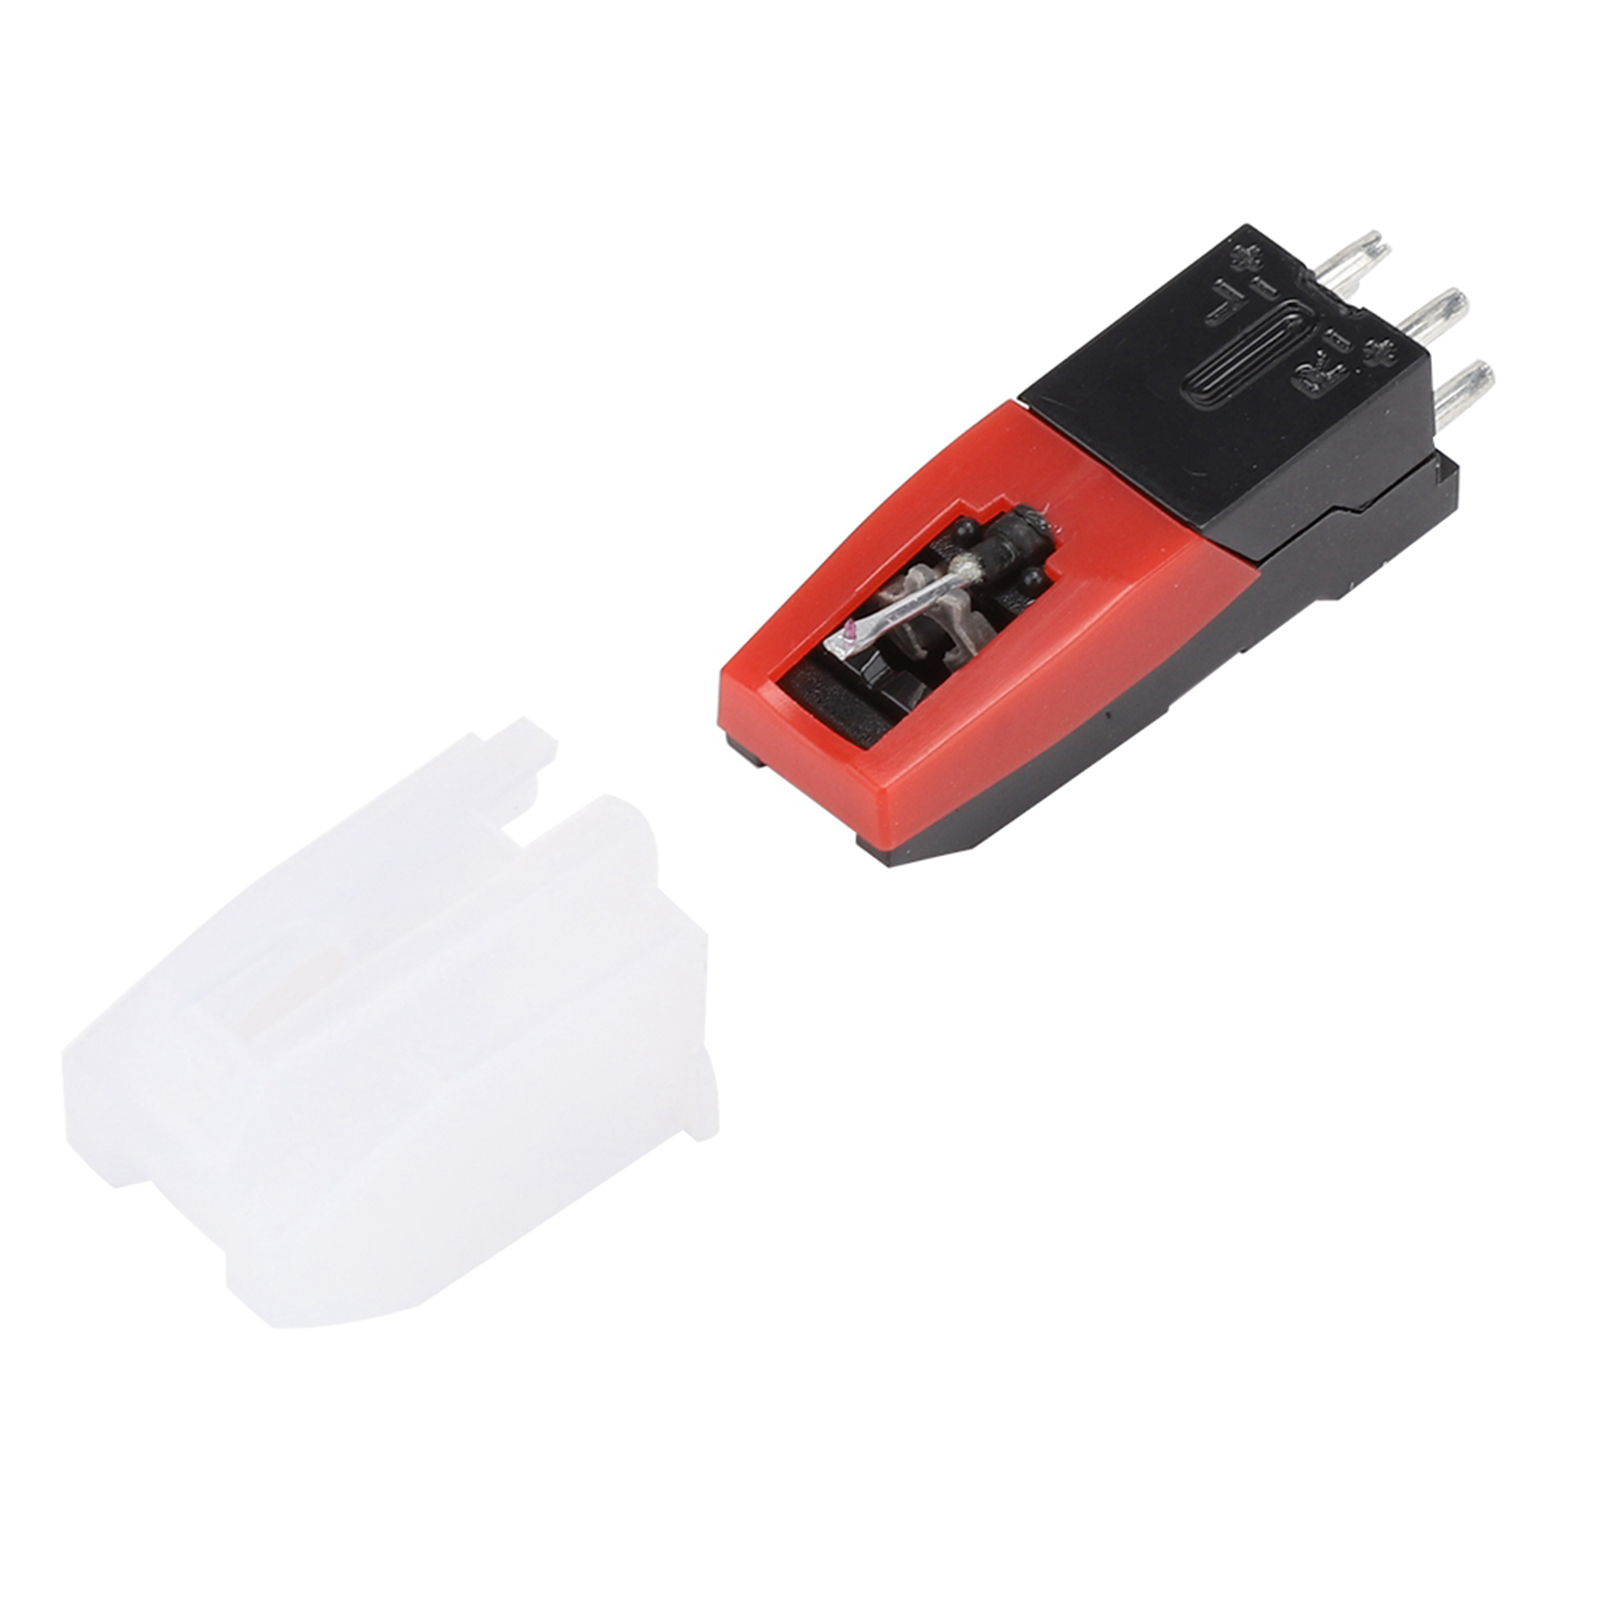 Audio-Magnetic-Cartridge-Stylus-with-LP-Vinyl-Needle-for-Turntable-Record-Player thumbnail 26